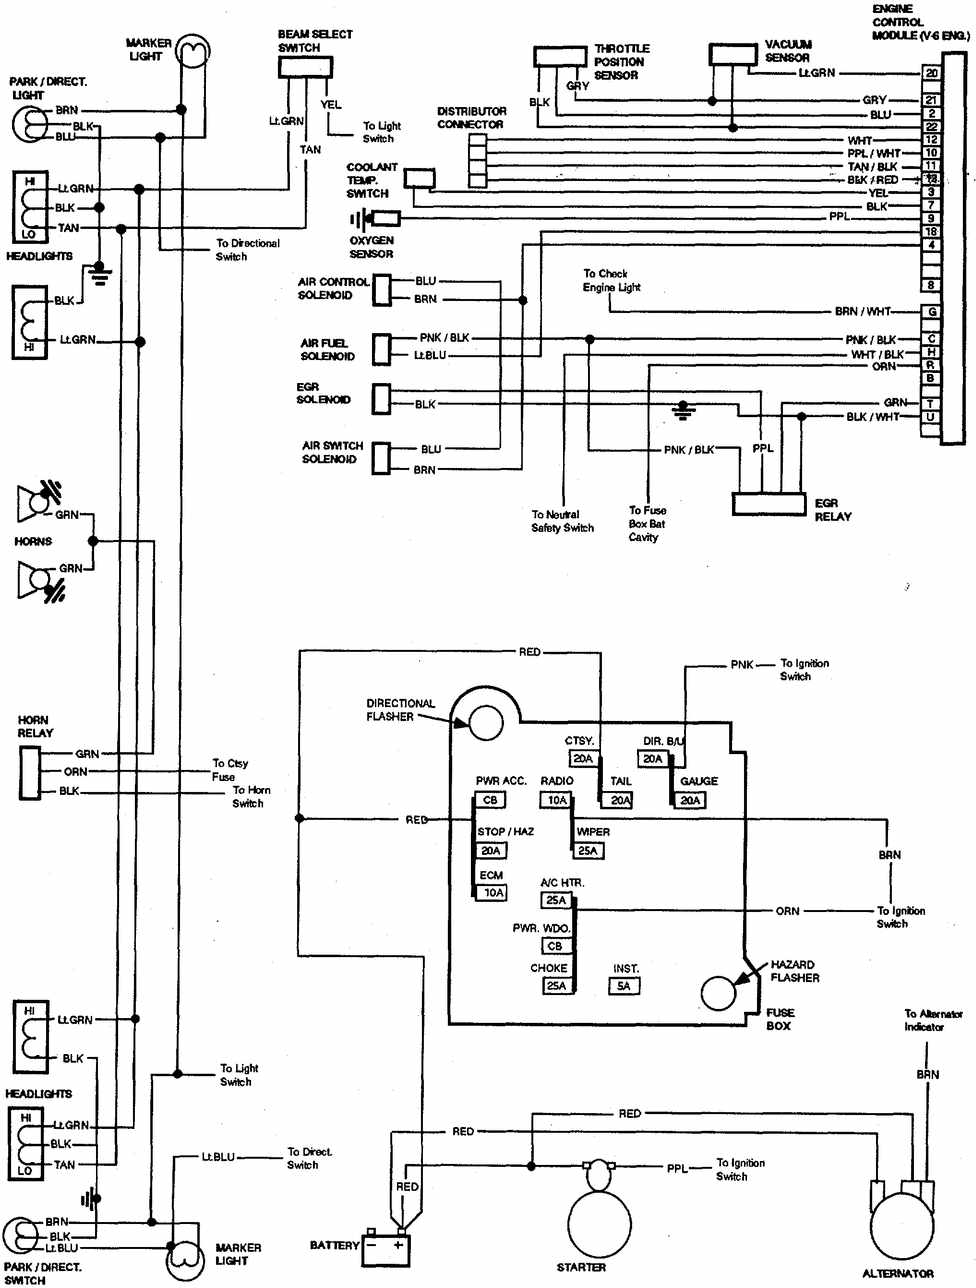 87 chevy truck engine wiring harness diagram